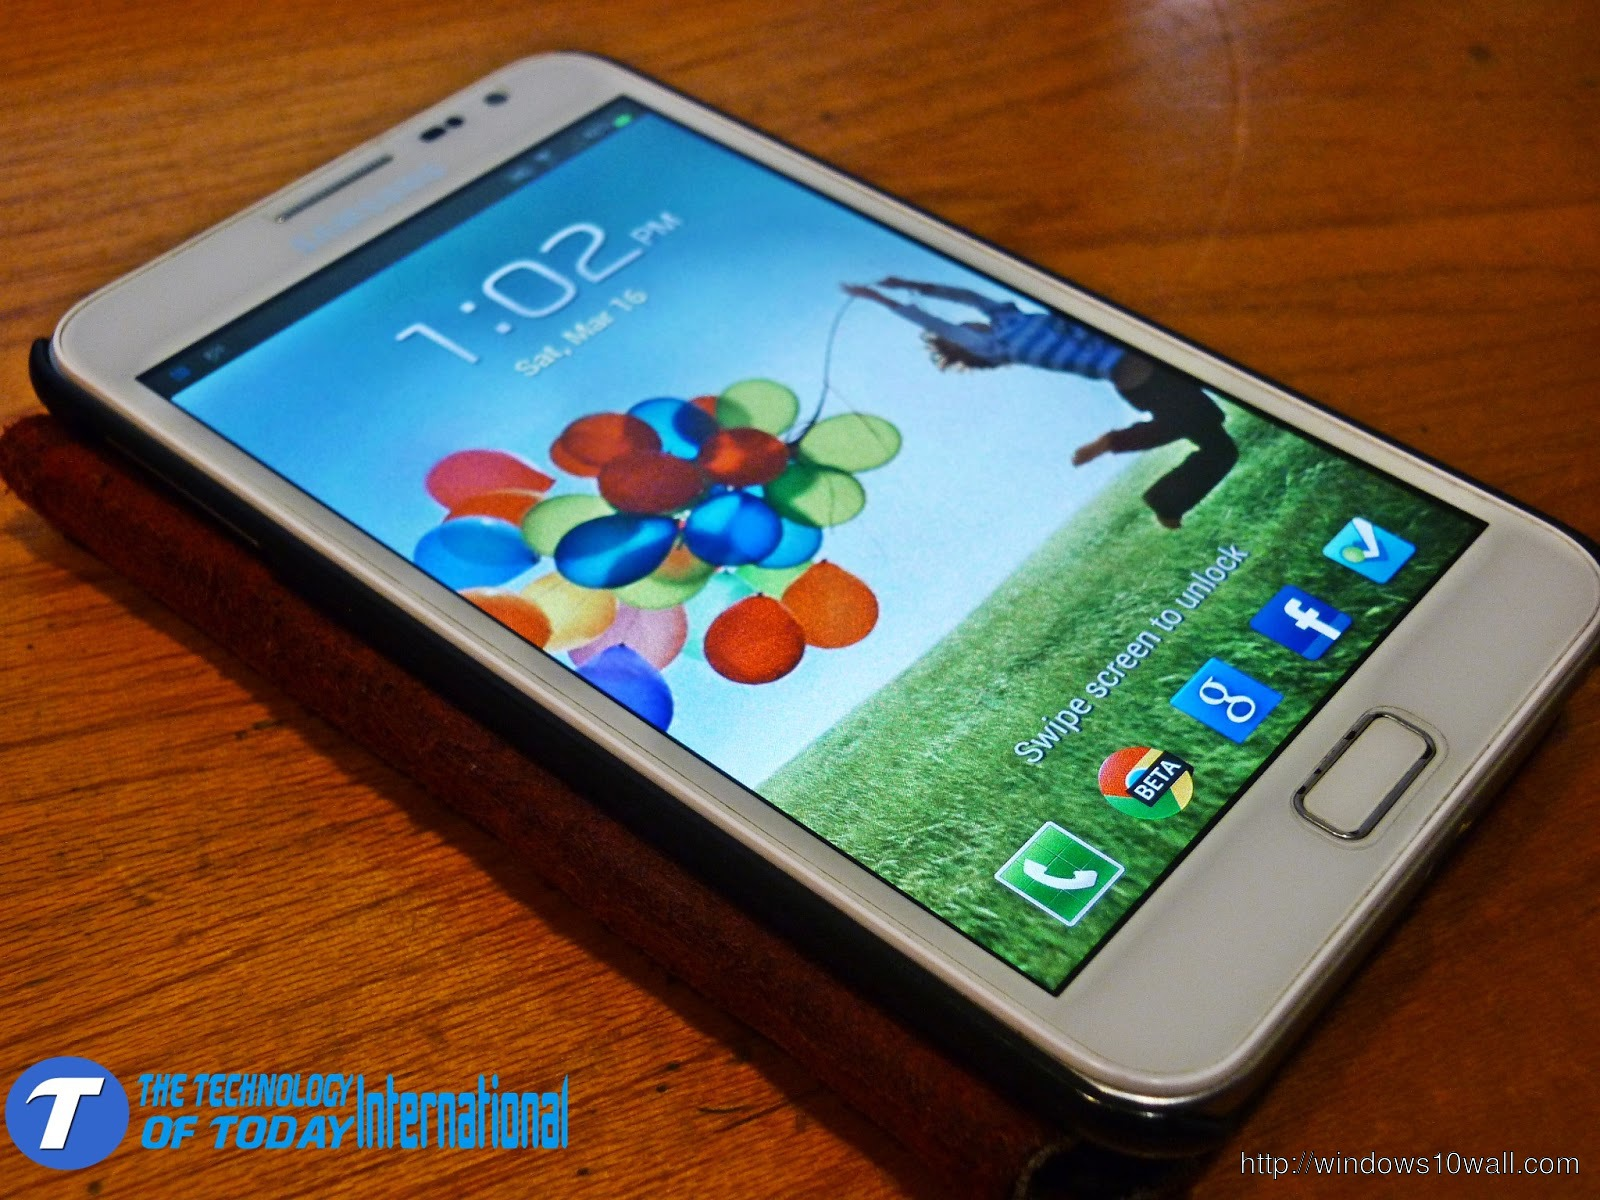 Download Samsung Galaxy S6 Wallpaper Leaked: Samsung Galaxy S4 Wallpapers Download For Iphone